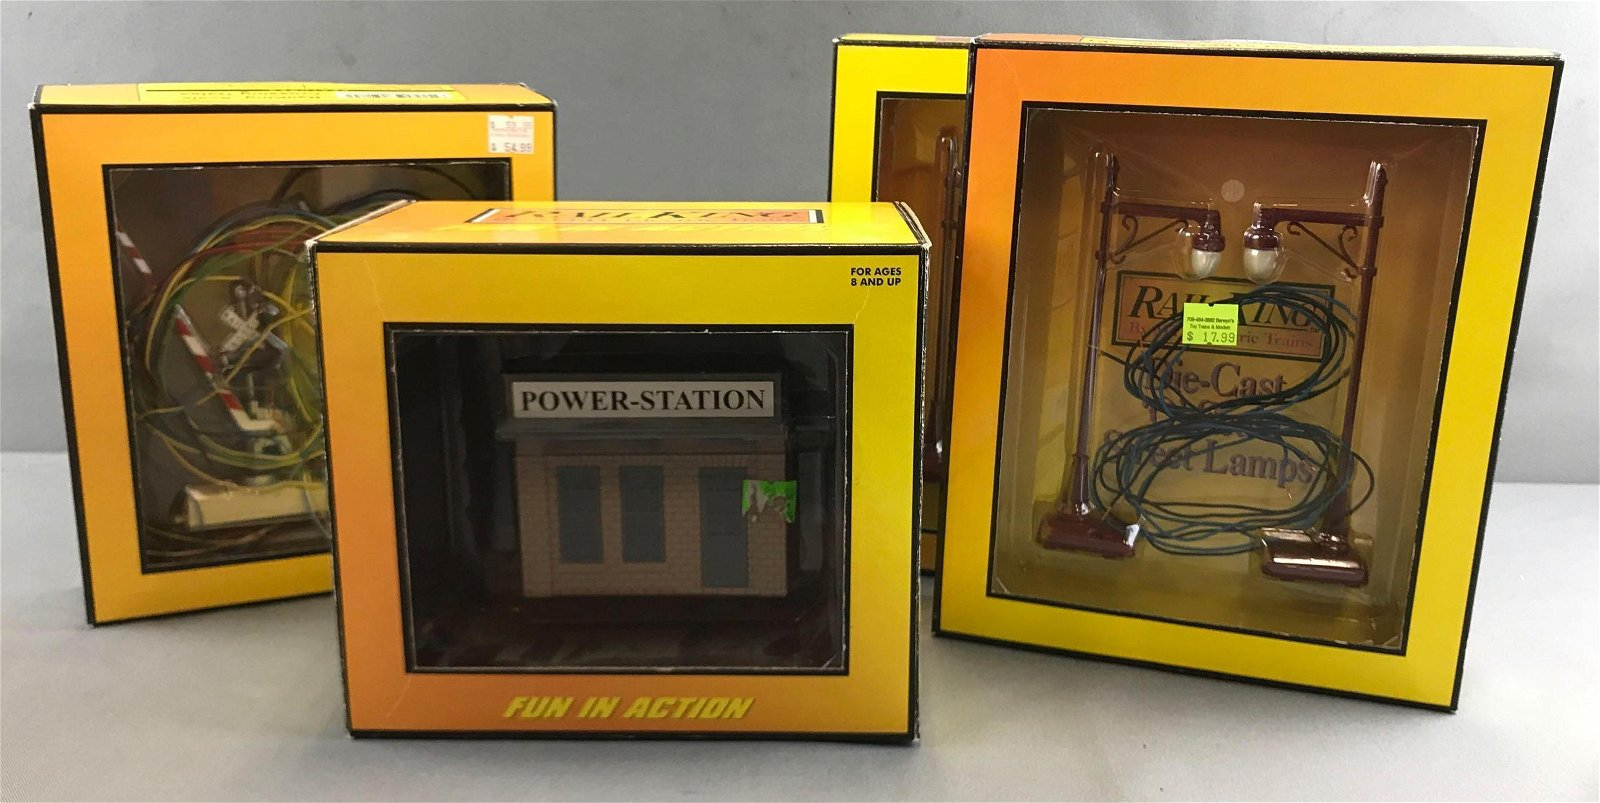 Group of 4 Rail King model railroad accessories and